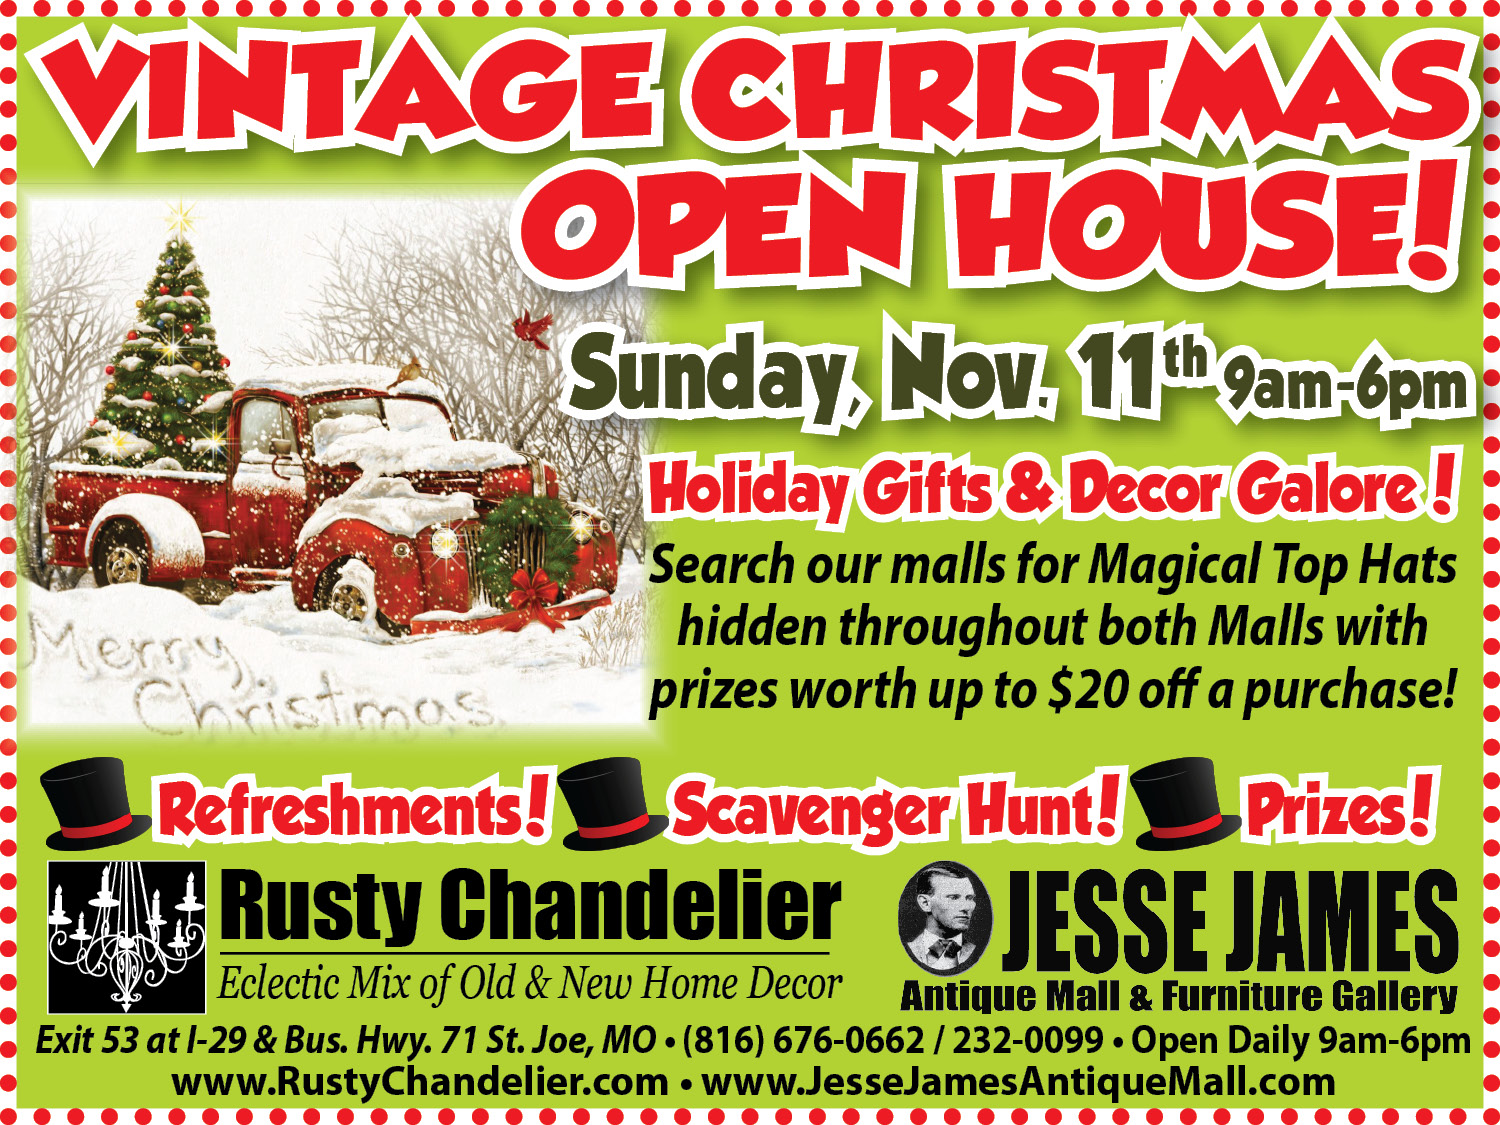 Christmas Open House.Vintage Christmas Open House Rusty Chandelier